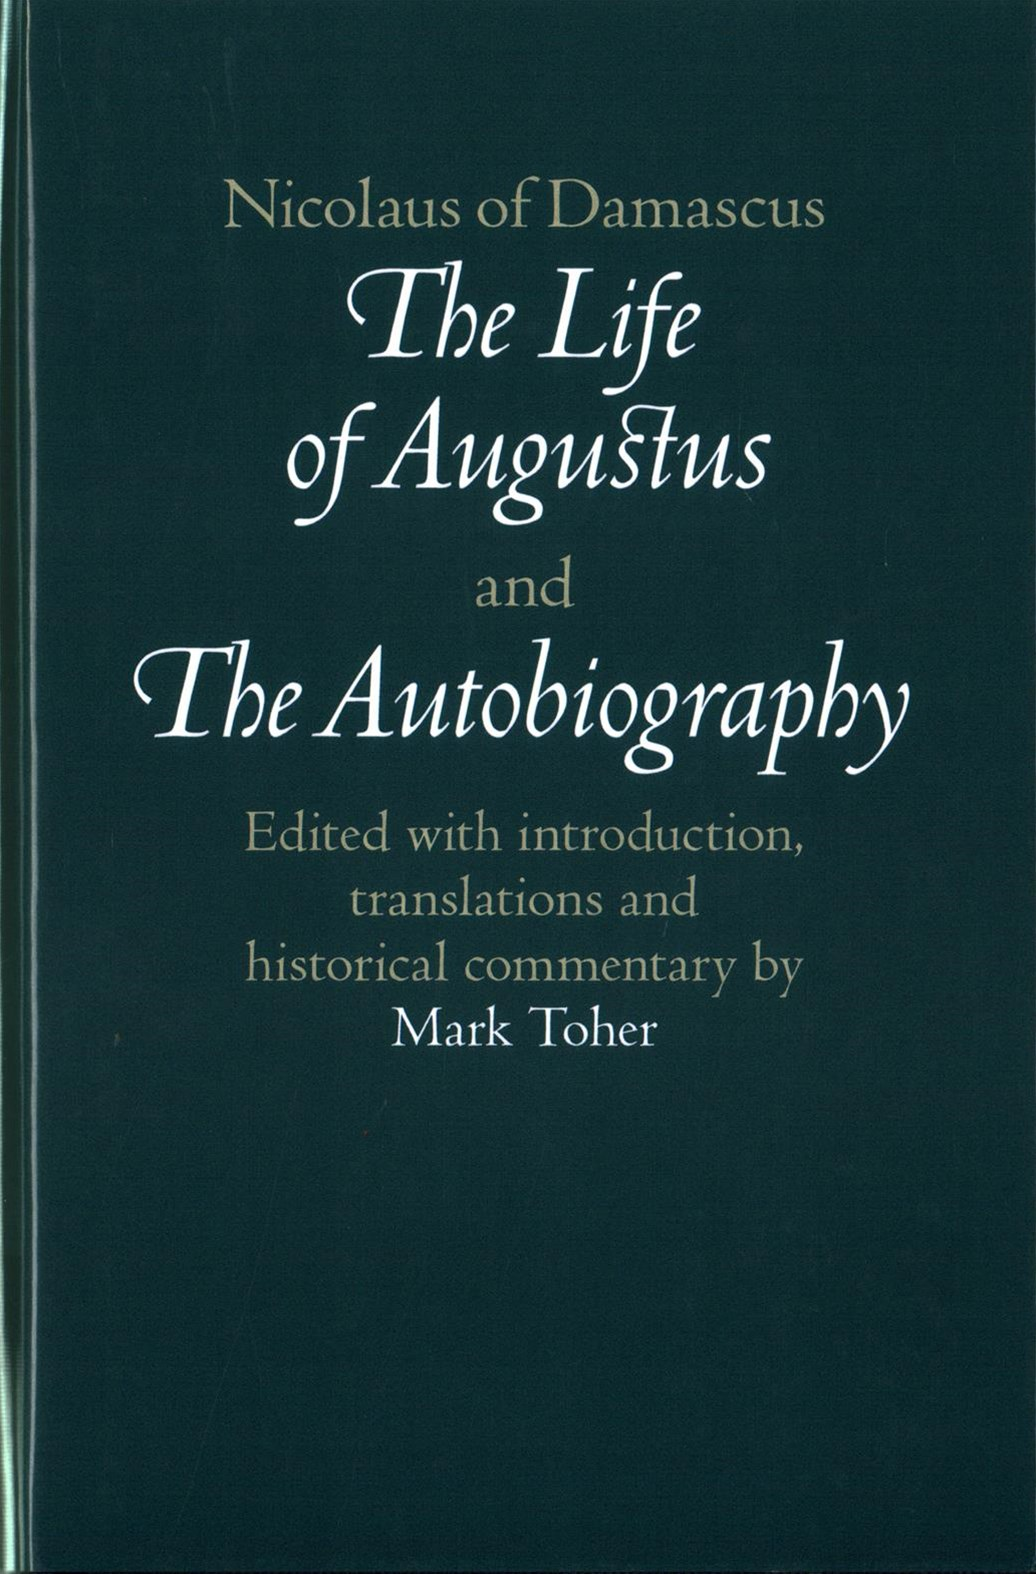 Nicolaus of Damascus: The Life of Augustus and The Autobiography